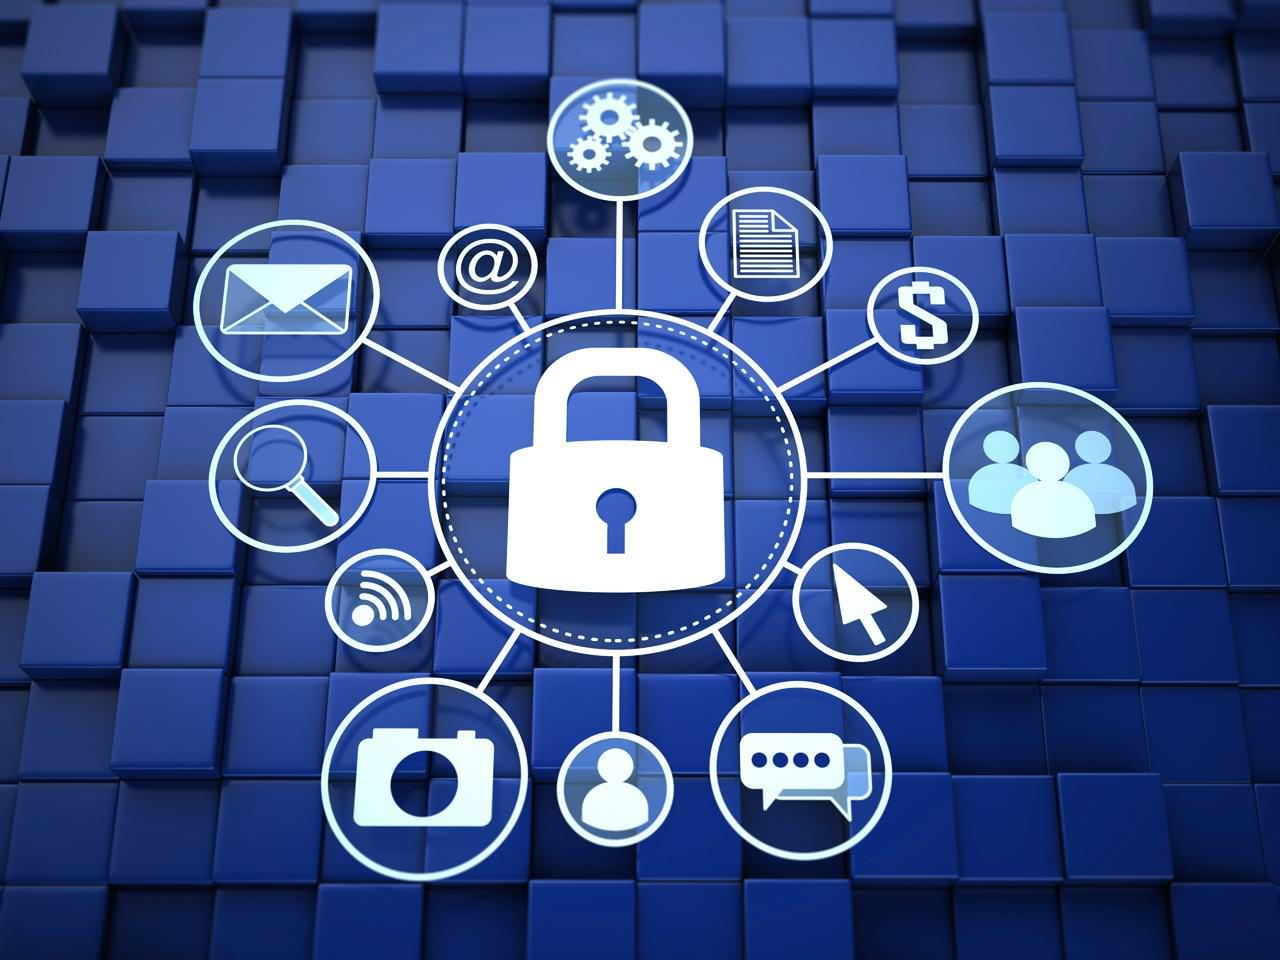 How will you secure and control devices? - Enterprise Mobility Challenges